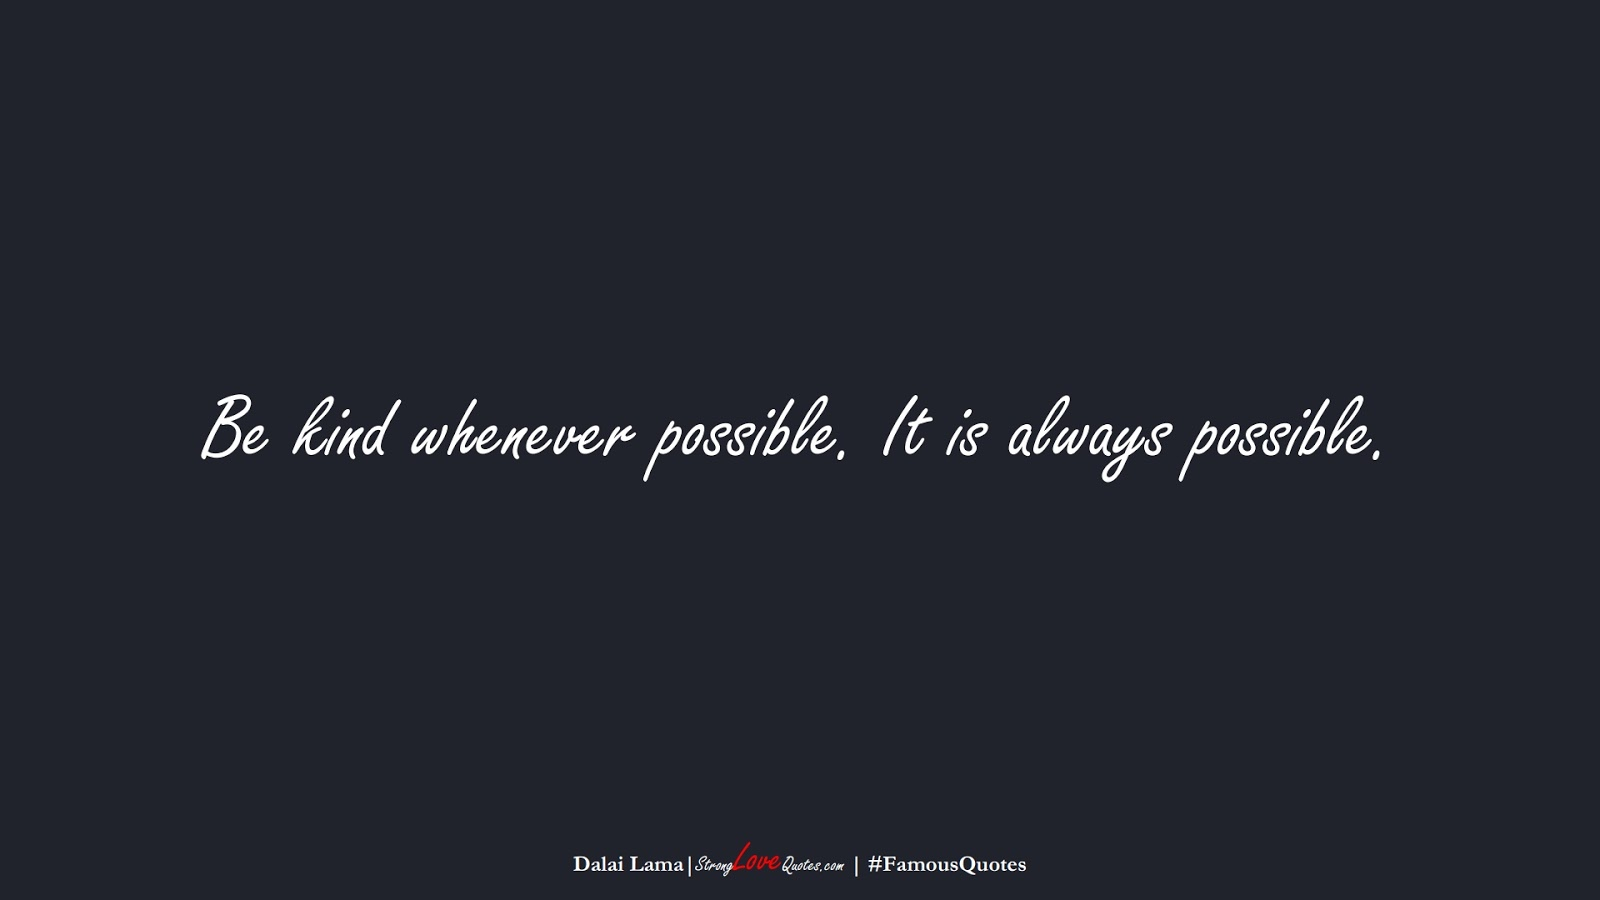 Be kind whenever possible. It is always possible. (Dalai Lama);  #FamousQuotes